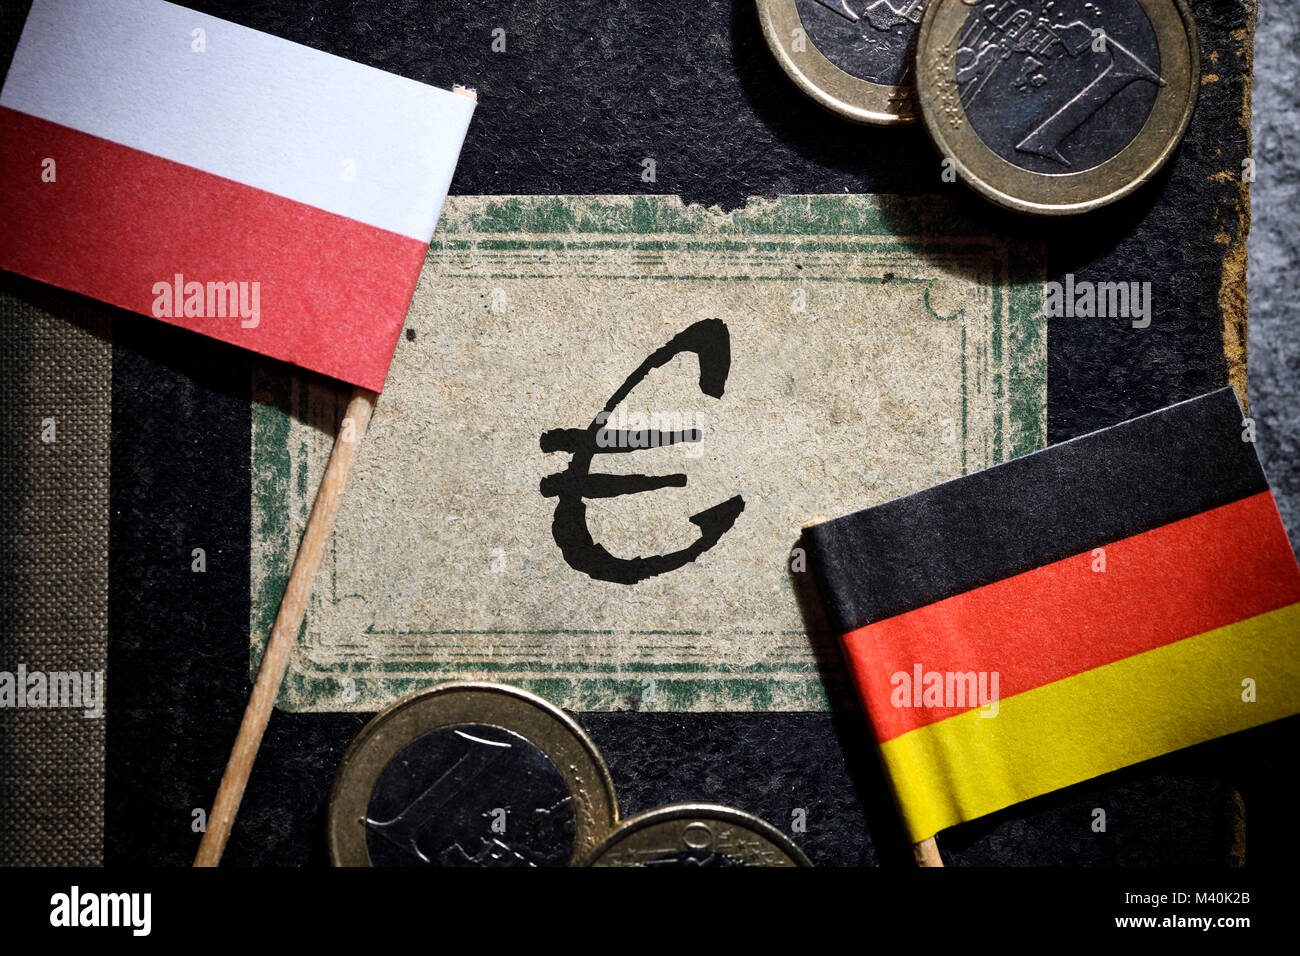 Flags of Germany and Poland and book with Euro sign, polish reparation demands, Fahnen von Deutschland und Polen Stock Photo